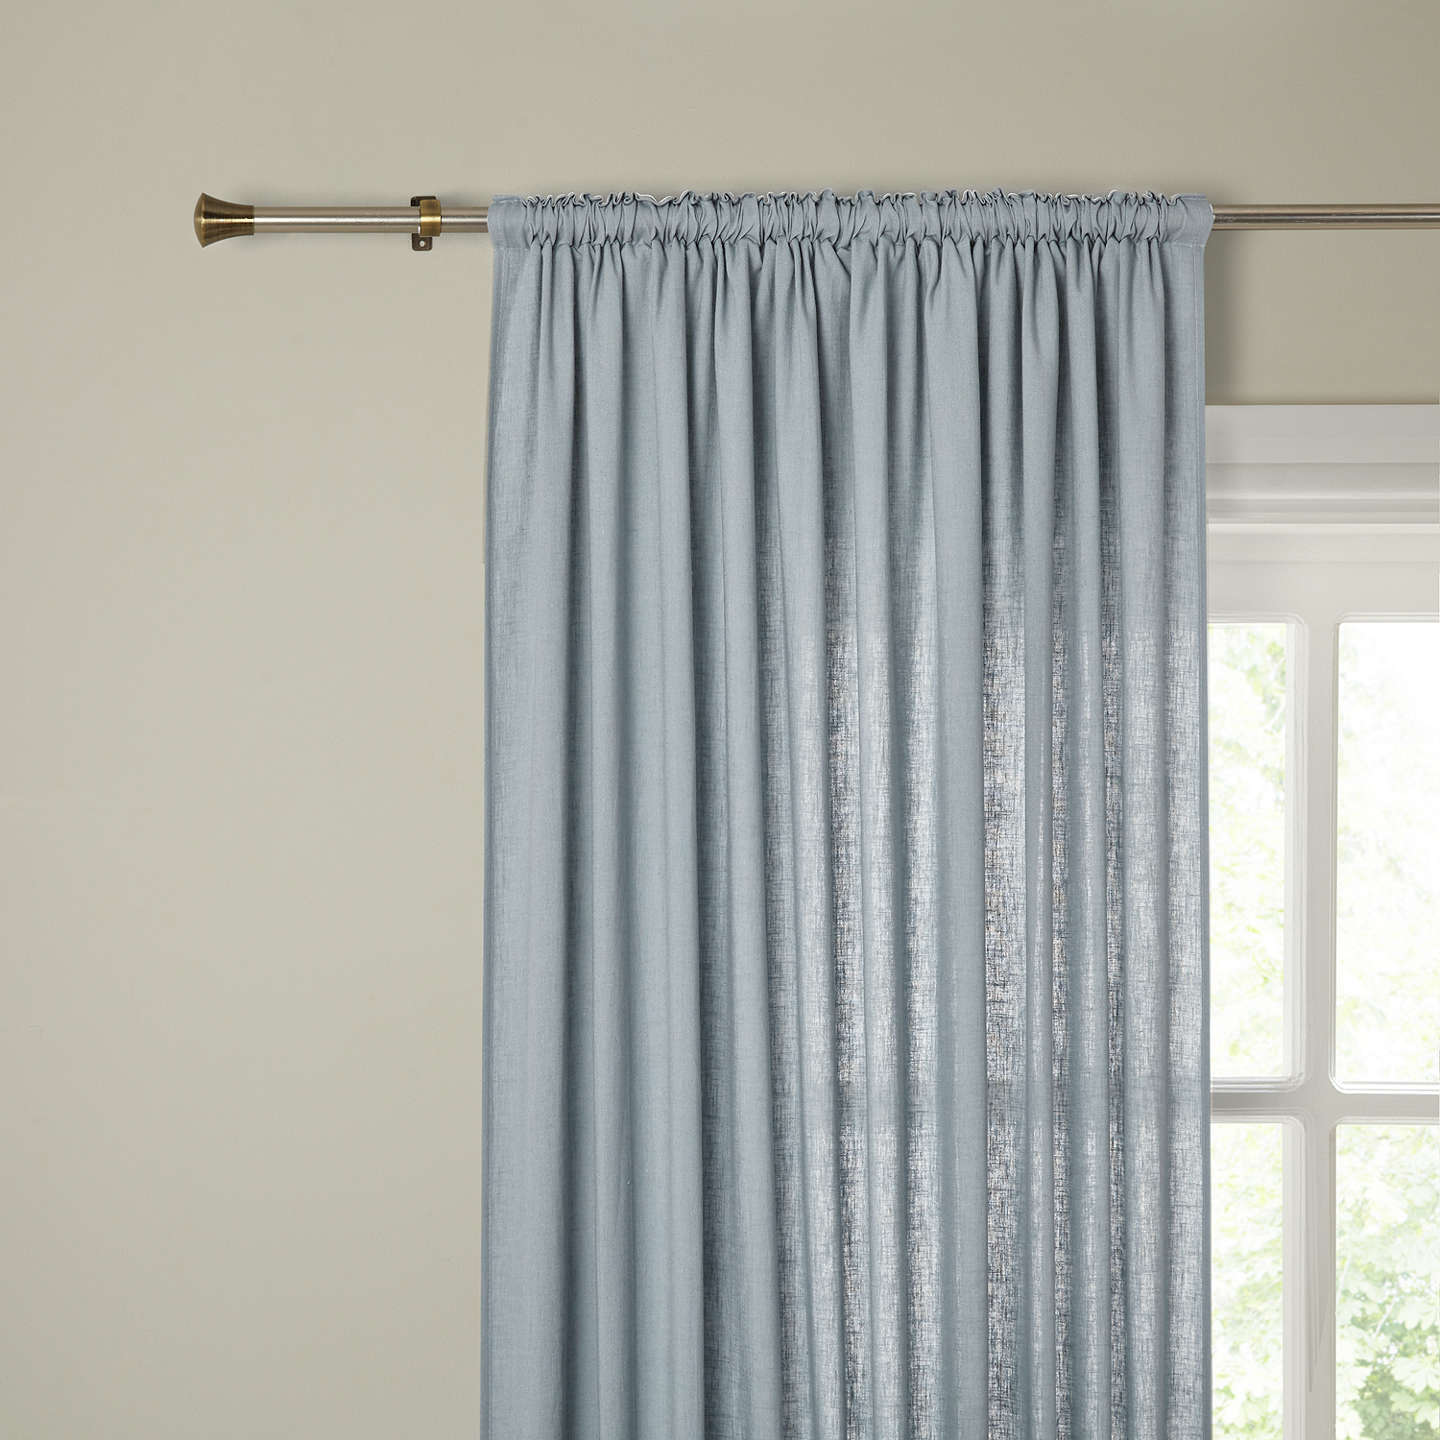 BuyJohn Lewis Washed Linen Slot Top Voile Panel, Slate, W145 x 230cm Online at johnlewis.com